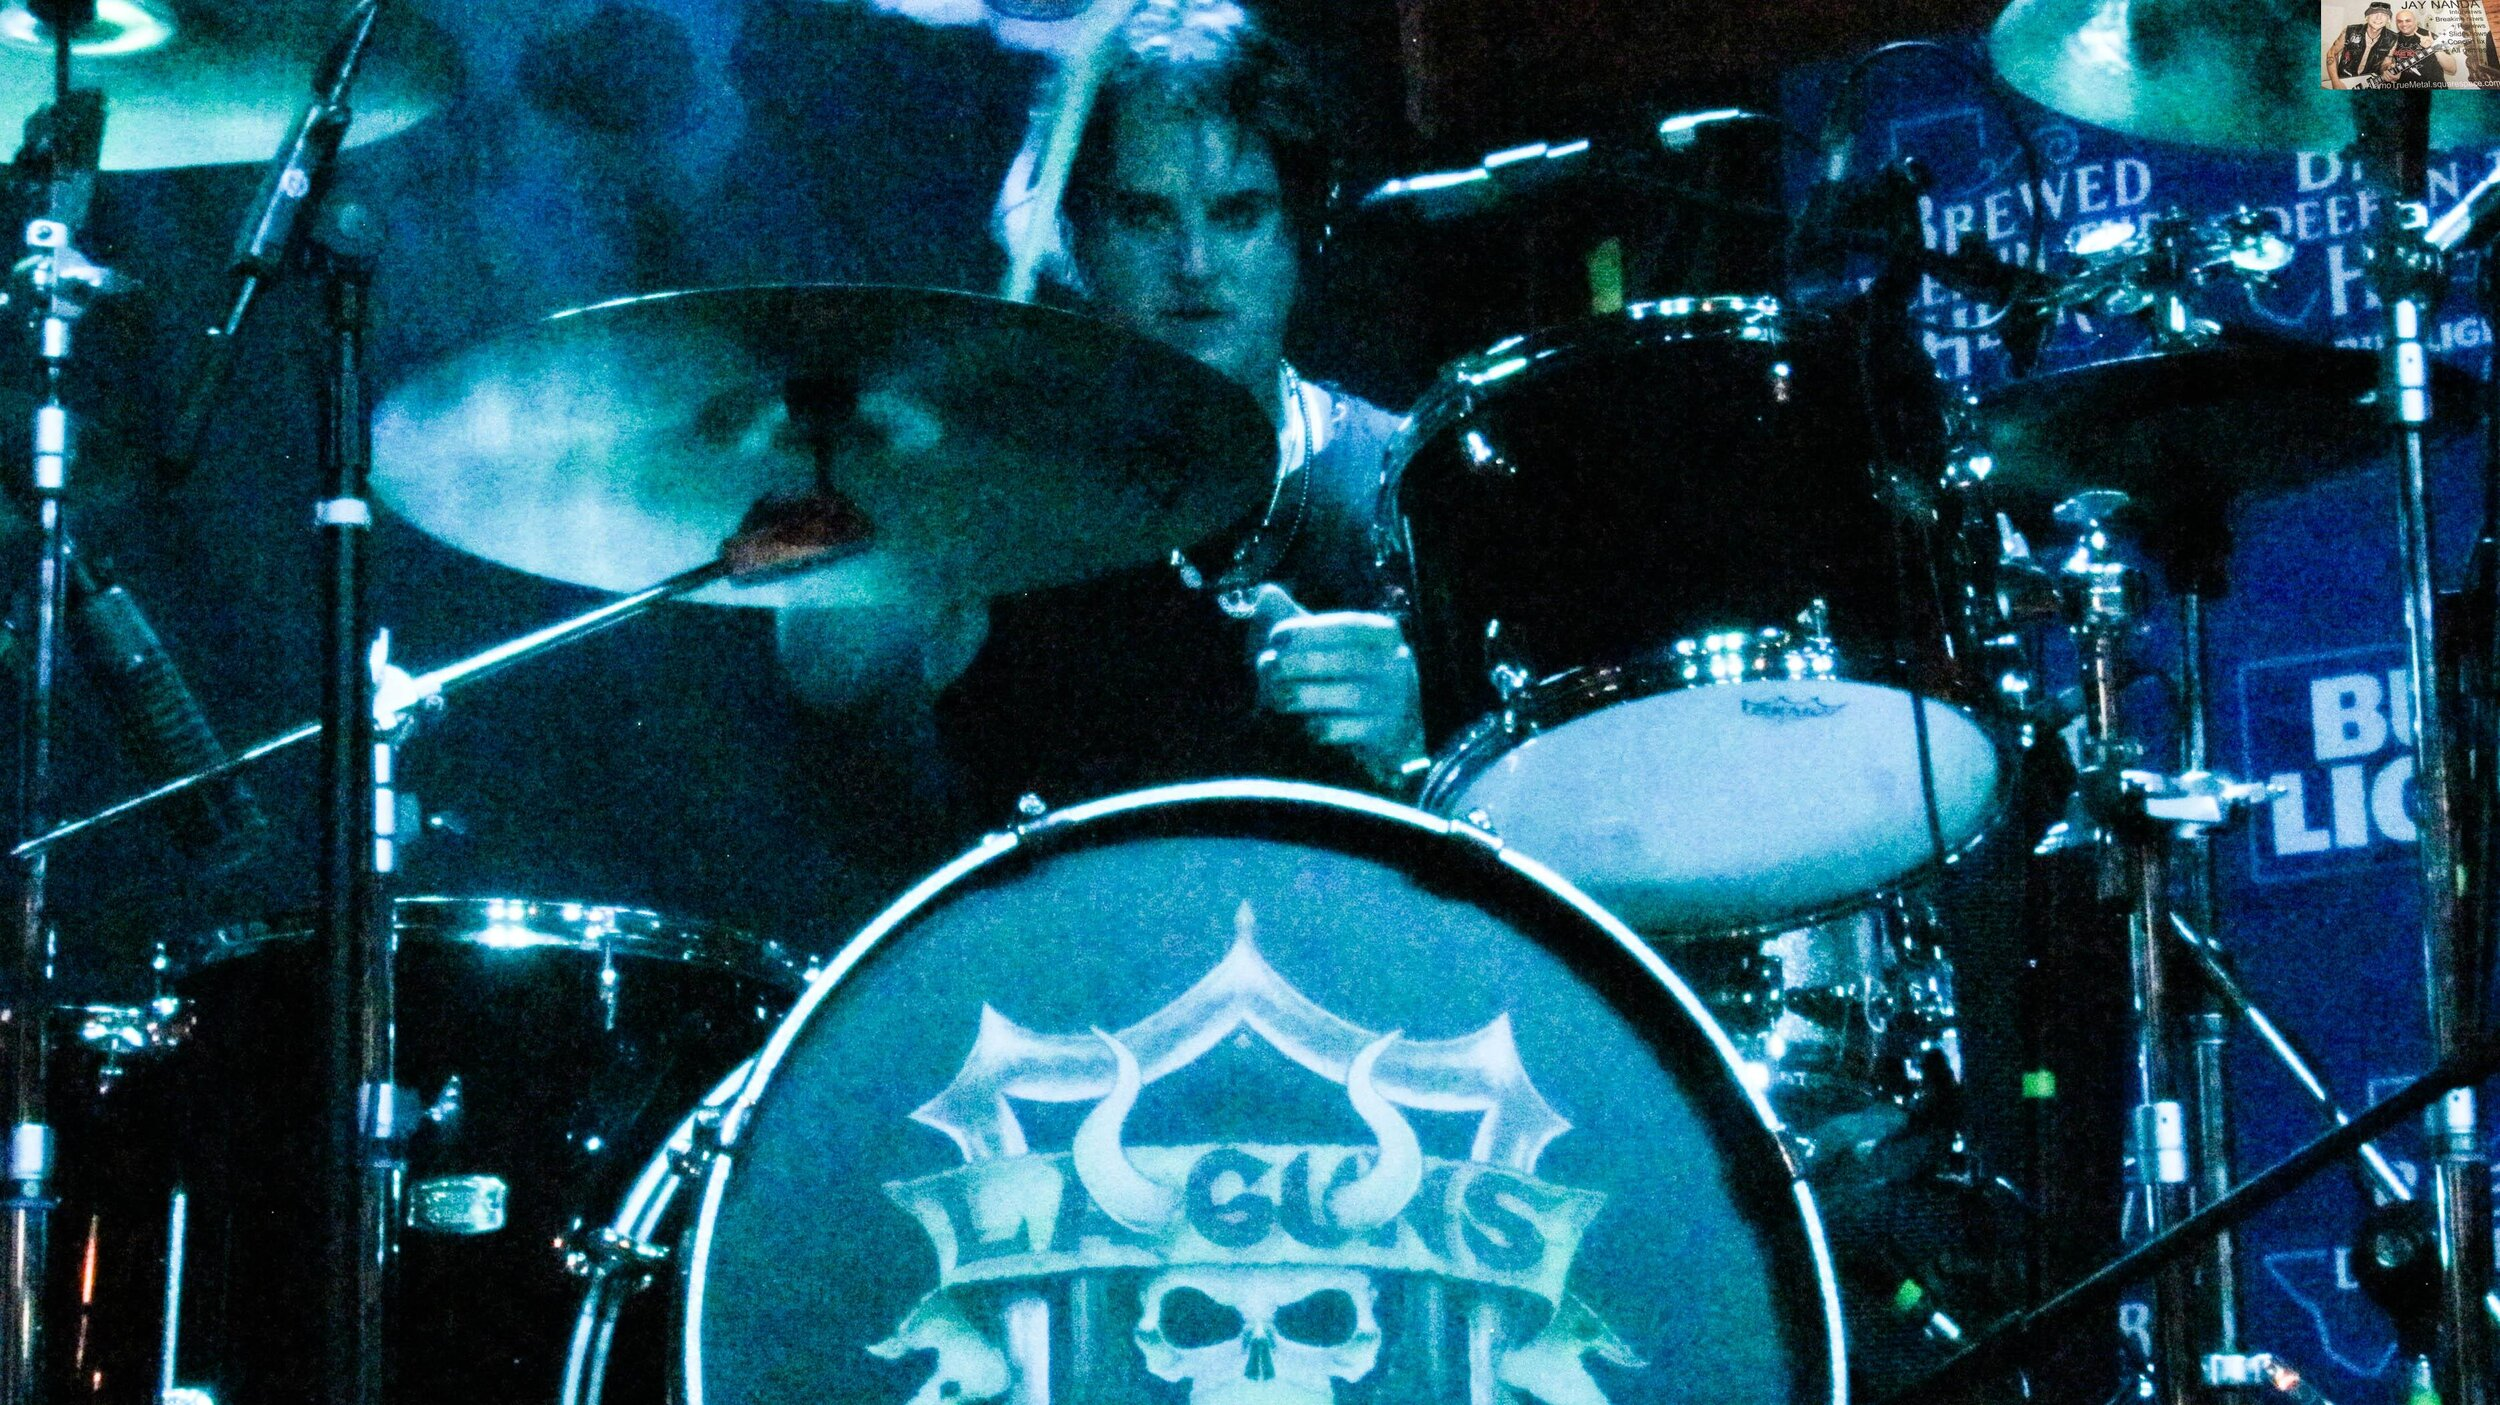 Coogan joined L.A. Guns in March after previous stints with Ace Frehley and Lita Ford.